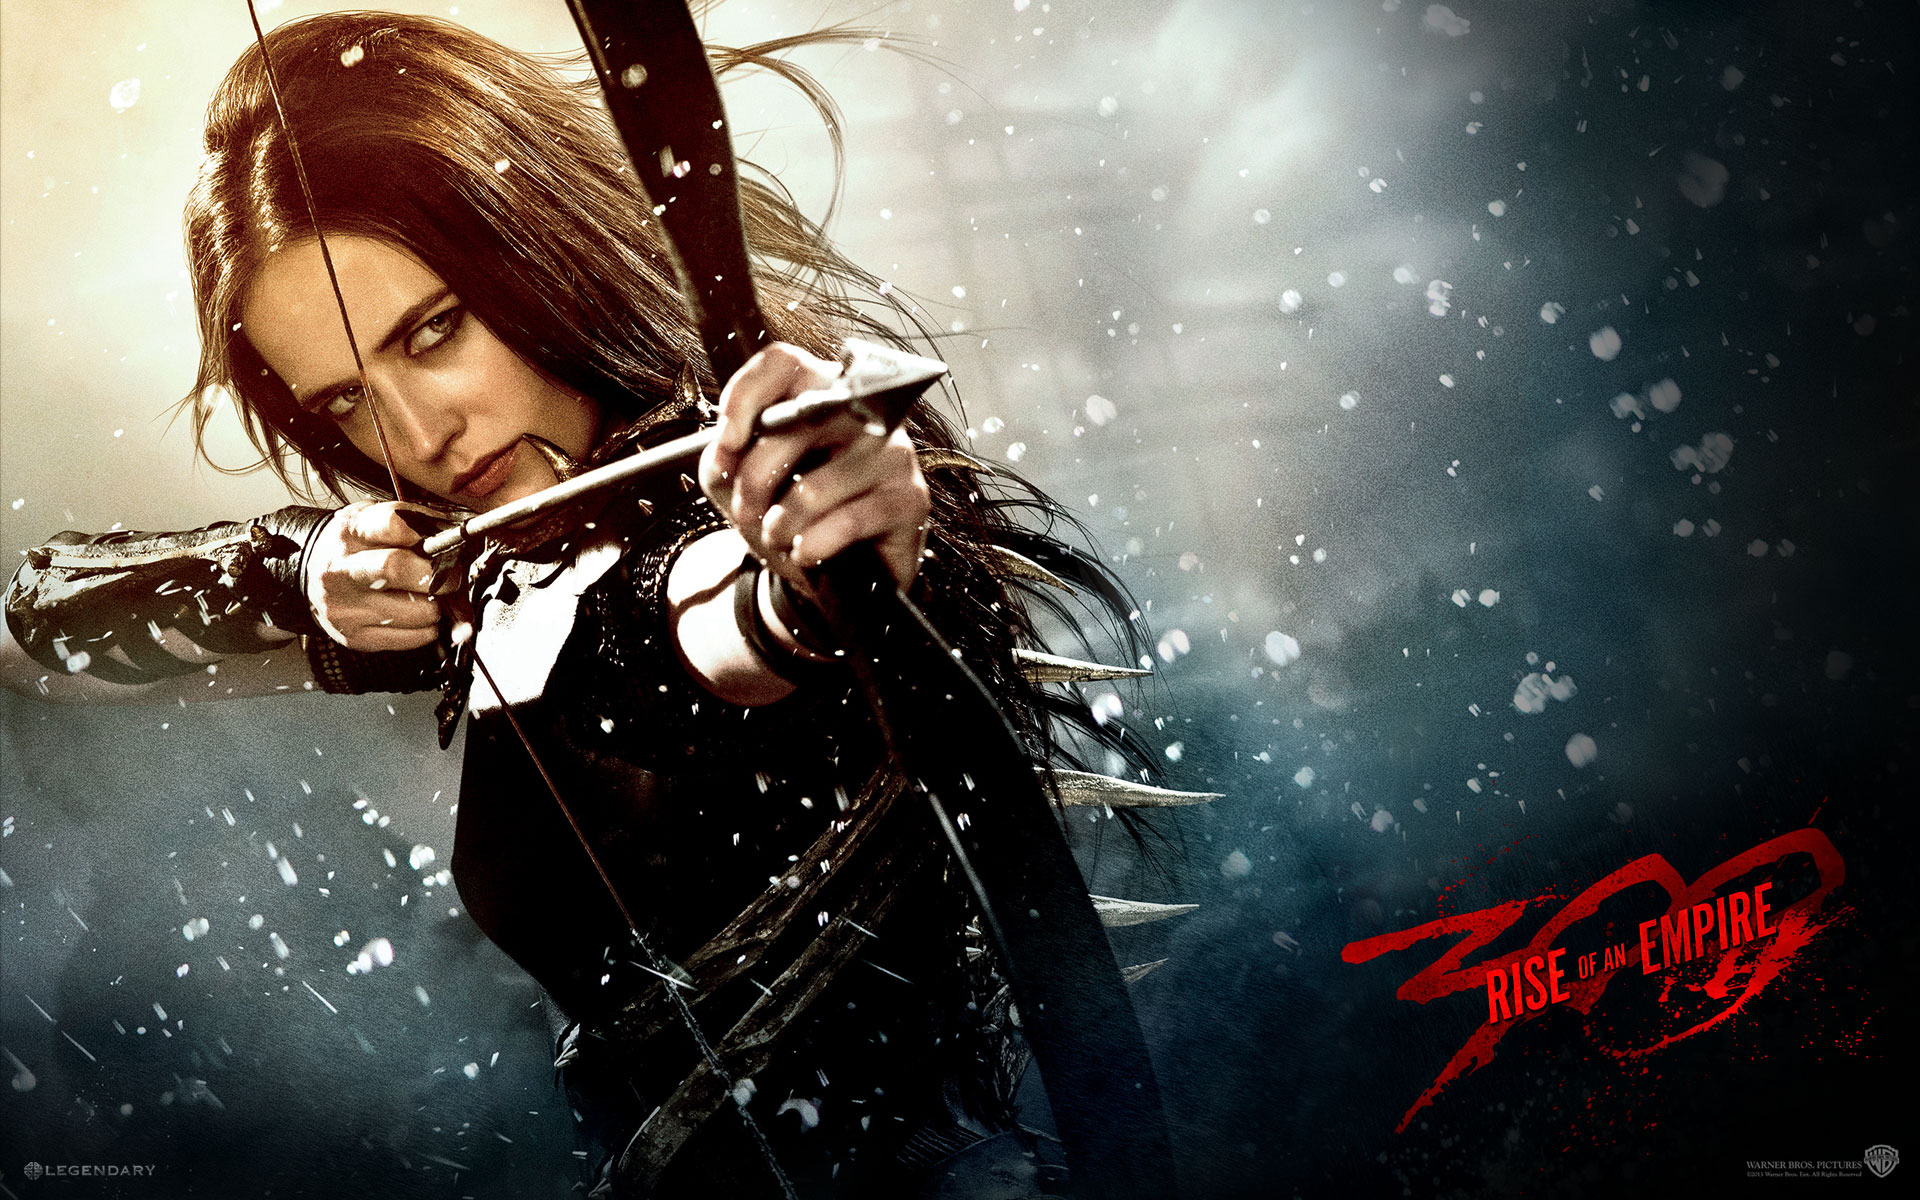 eva green artemisia 300 rise of an empire movie 2014 girl hd wallpaper ...